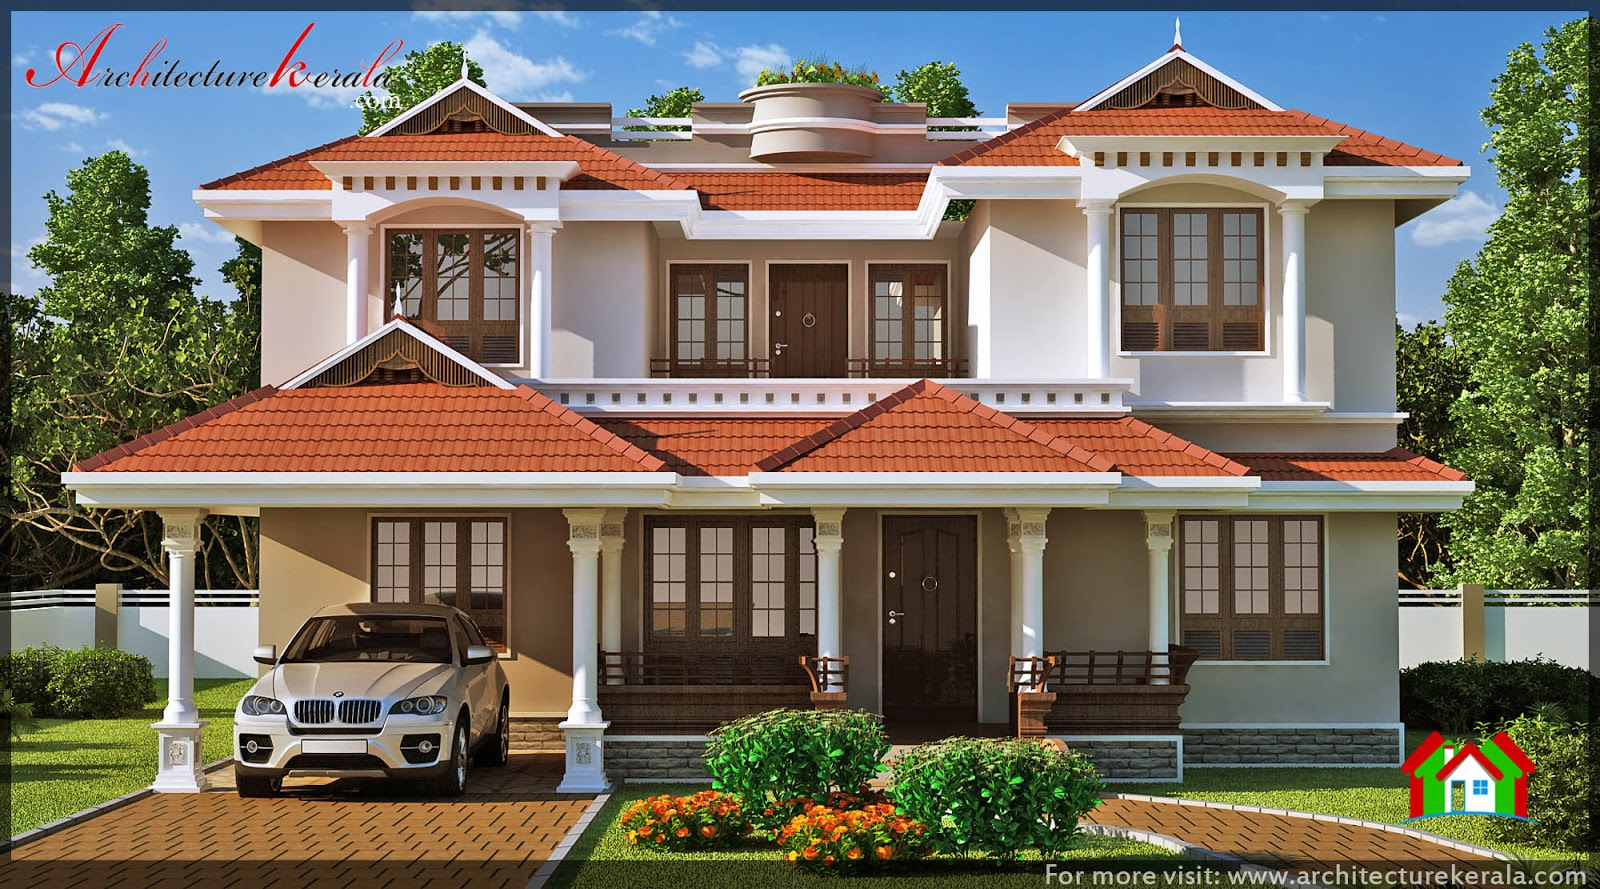 Traditional kerala house elevation architecture kerala for Traditional home designs